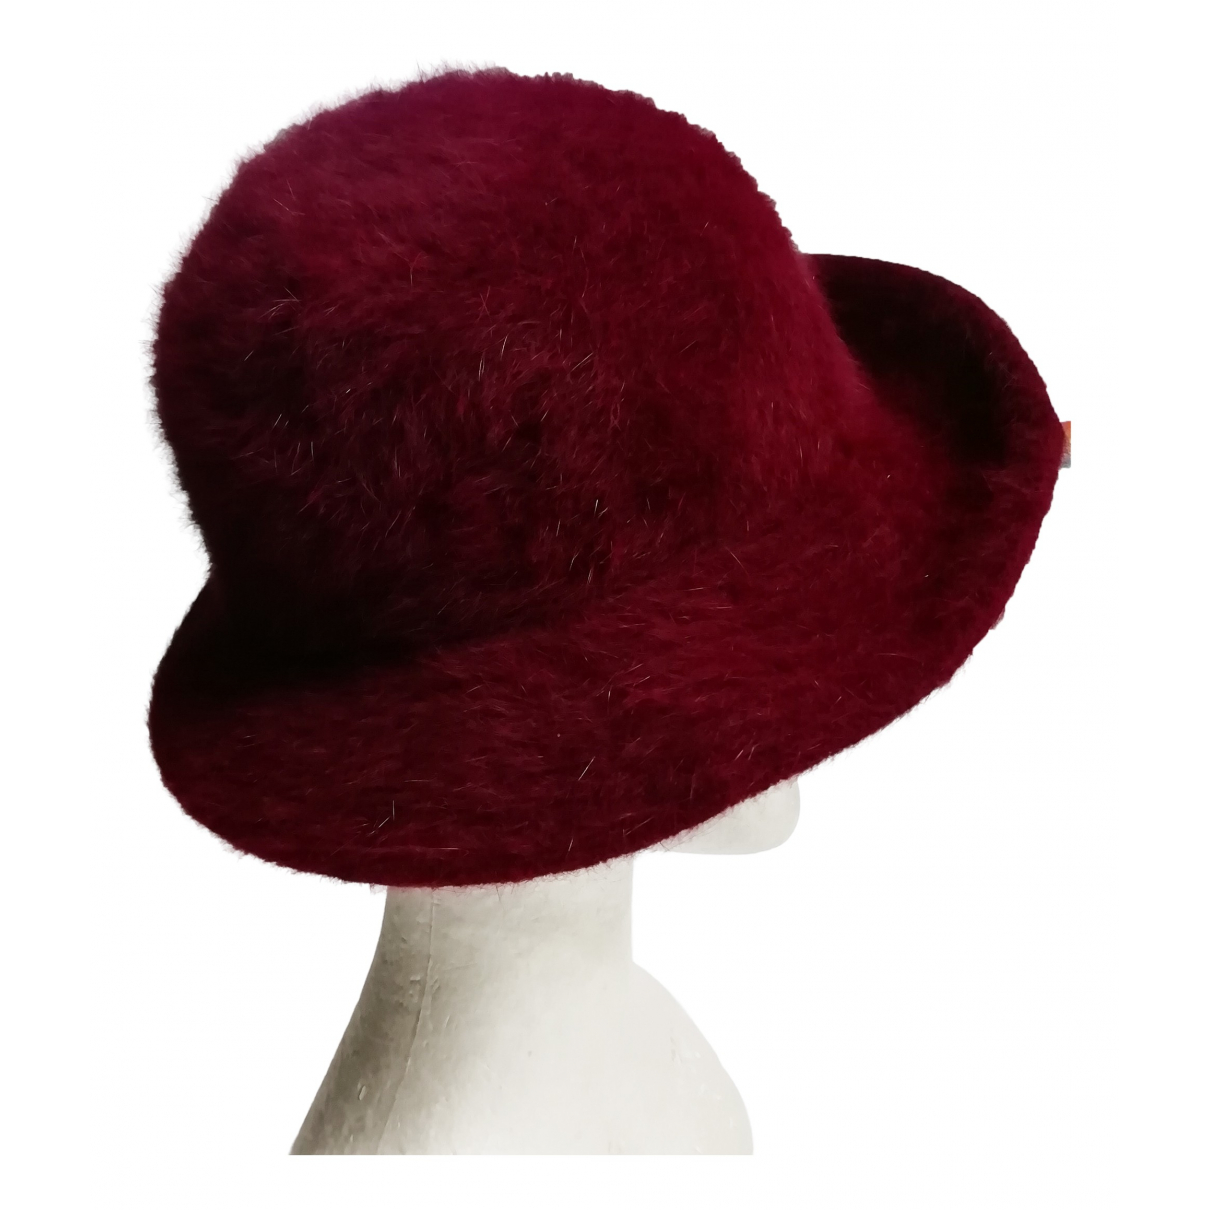 Non Signé / Unsigned N Burgundy Wool hat for Women 22.4 Inches